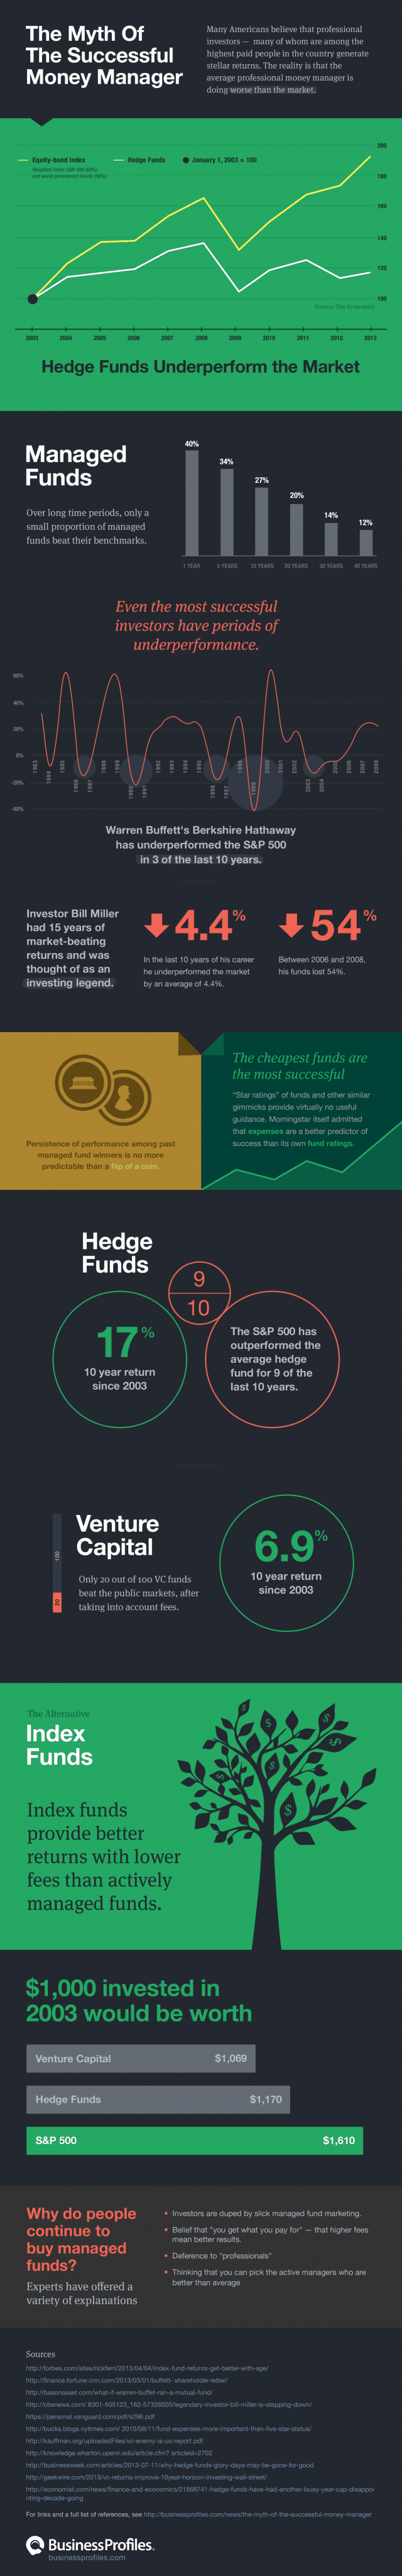 moneymanager_infographic_final@2x